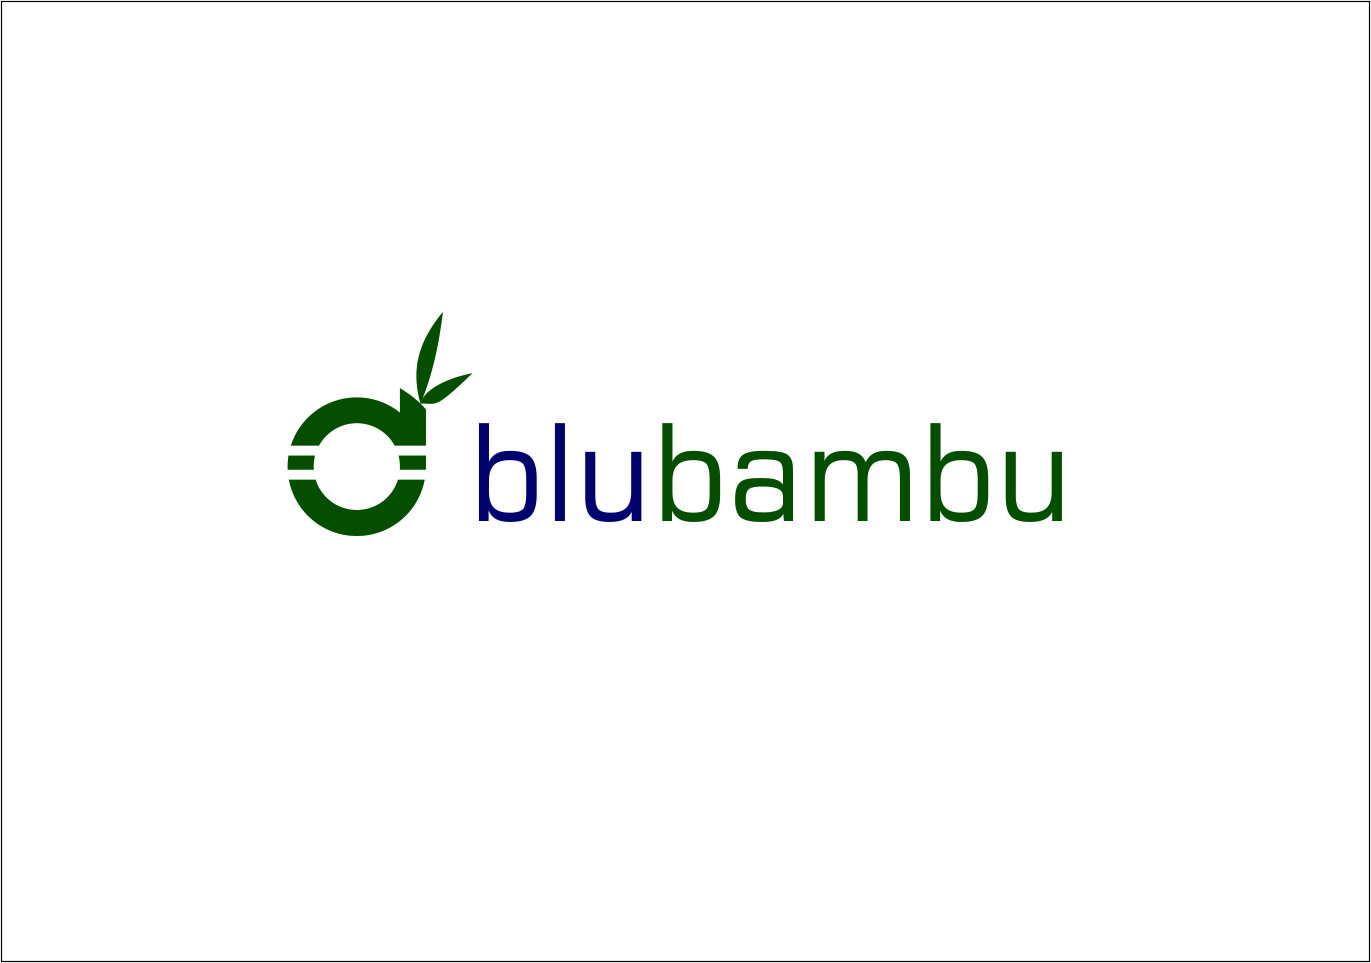 Logo Design by Agus Martoyo - Entry No. 74 in the Logo Design Contest New Logo Design for blubambu.